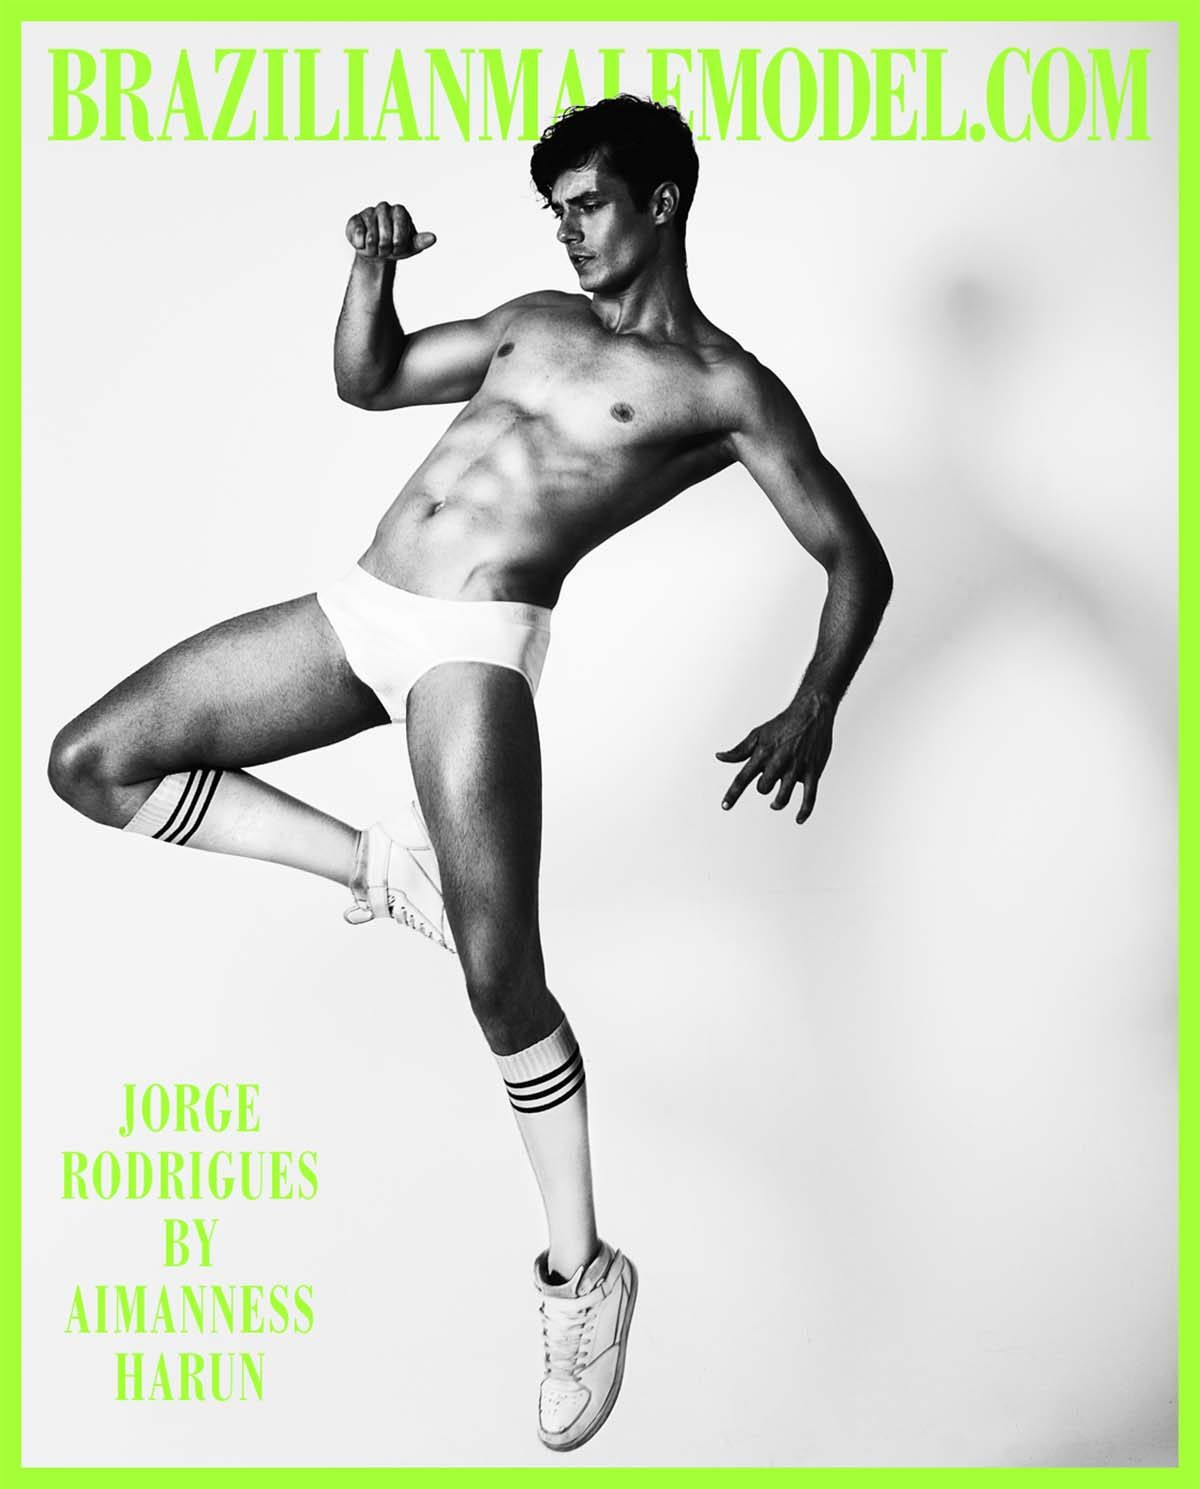 Jorge Rodrigues by Aimanness Harun